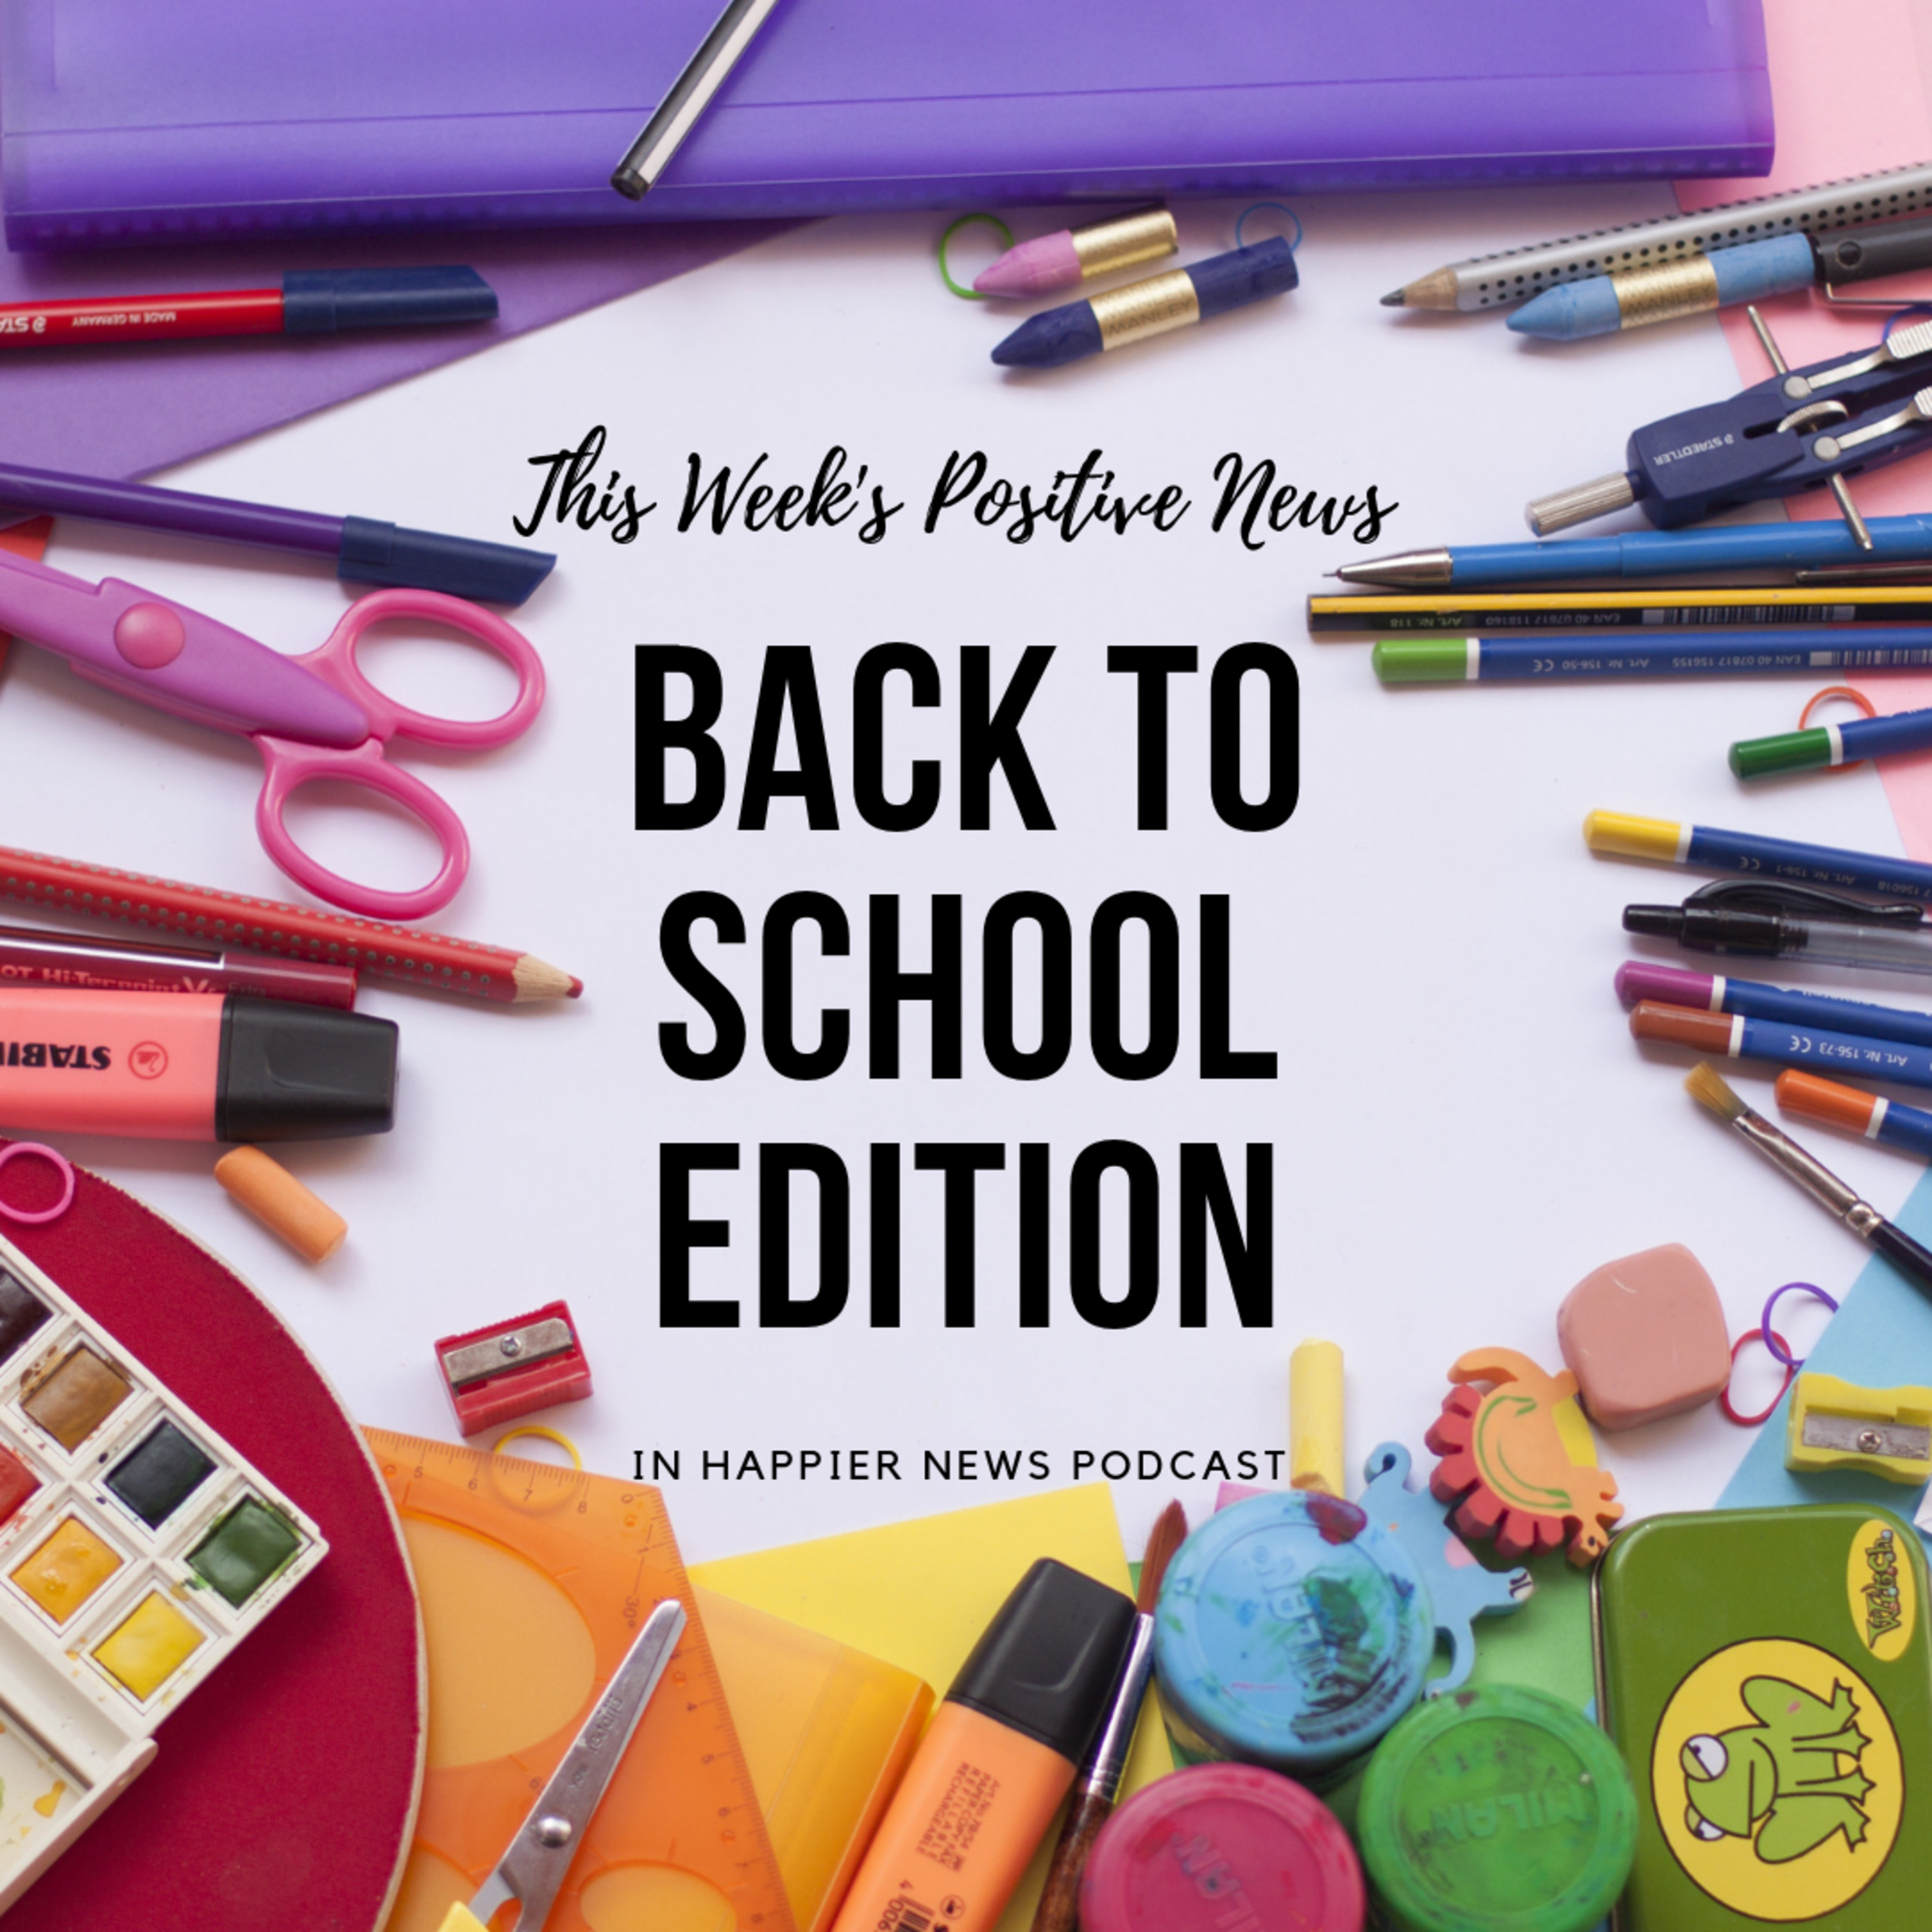 This Week's Positive News - Back to School Edition